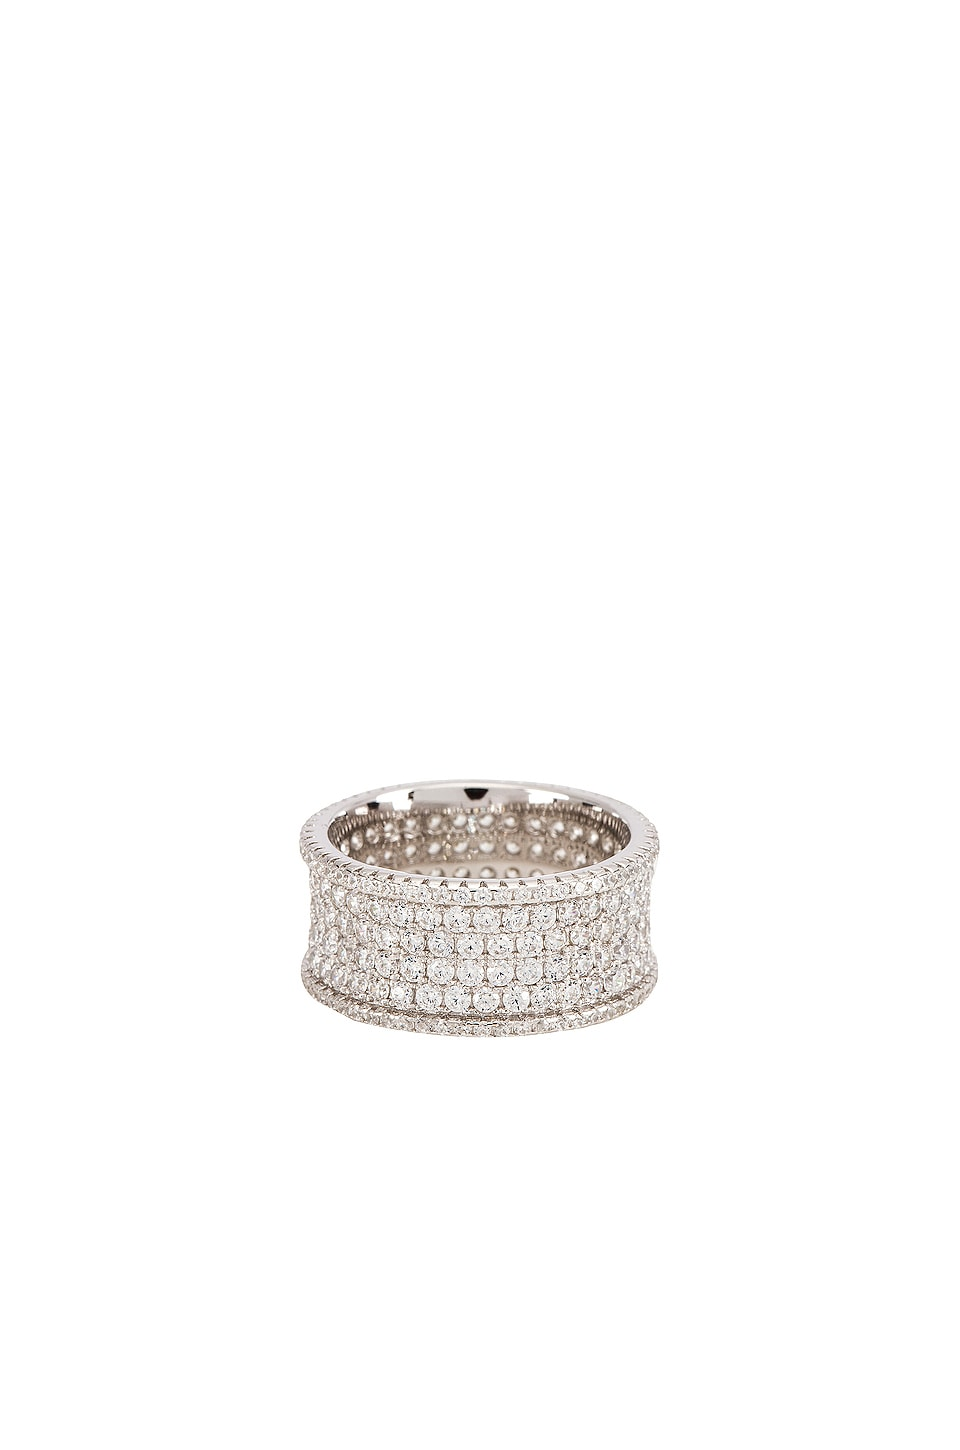 The M Jewelers NY Iced Out Four Row Ring in Sterling Silver